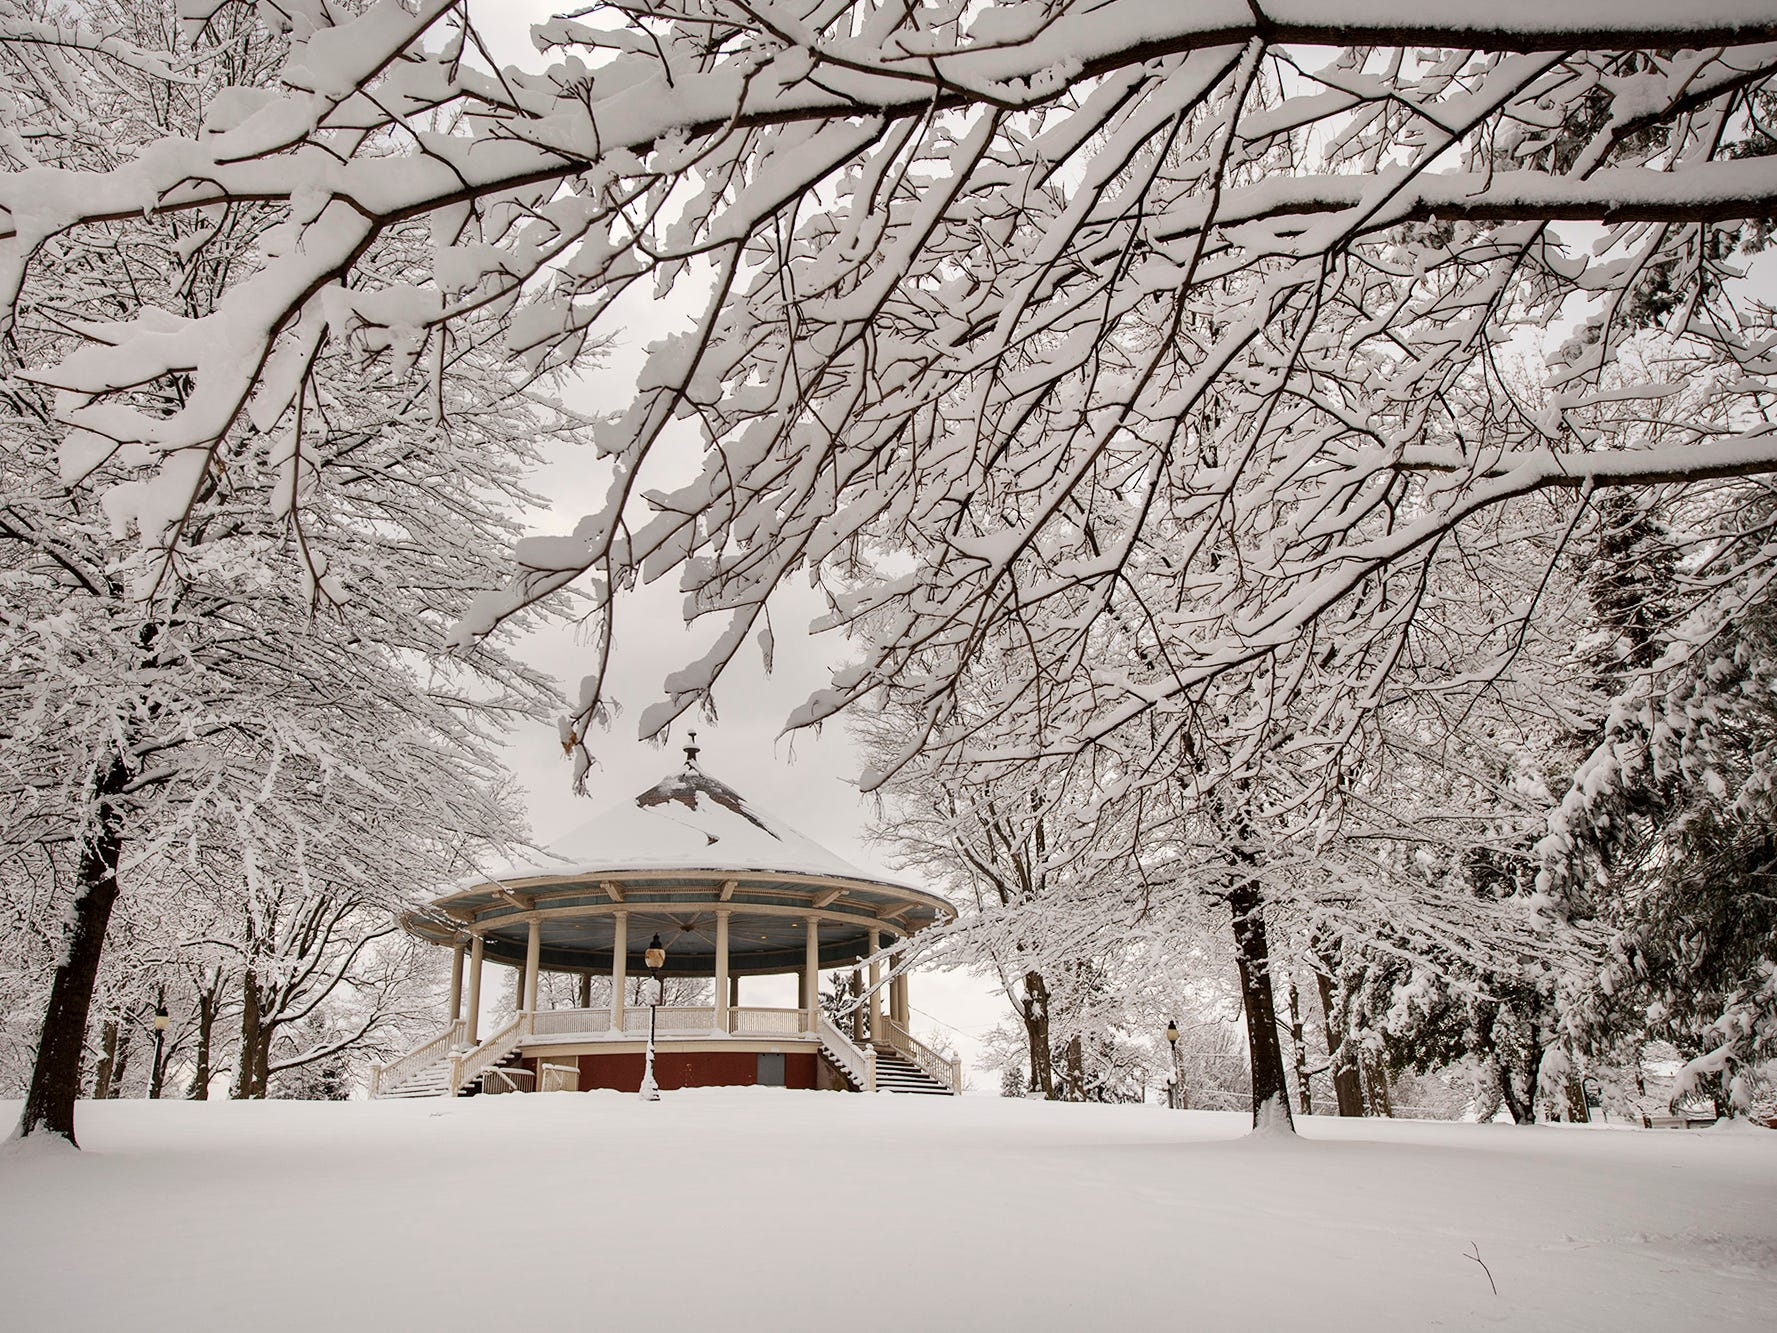 The bandstand shrouded by snowy trees in Farquahr Park Monday March 4, 2019.